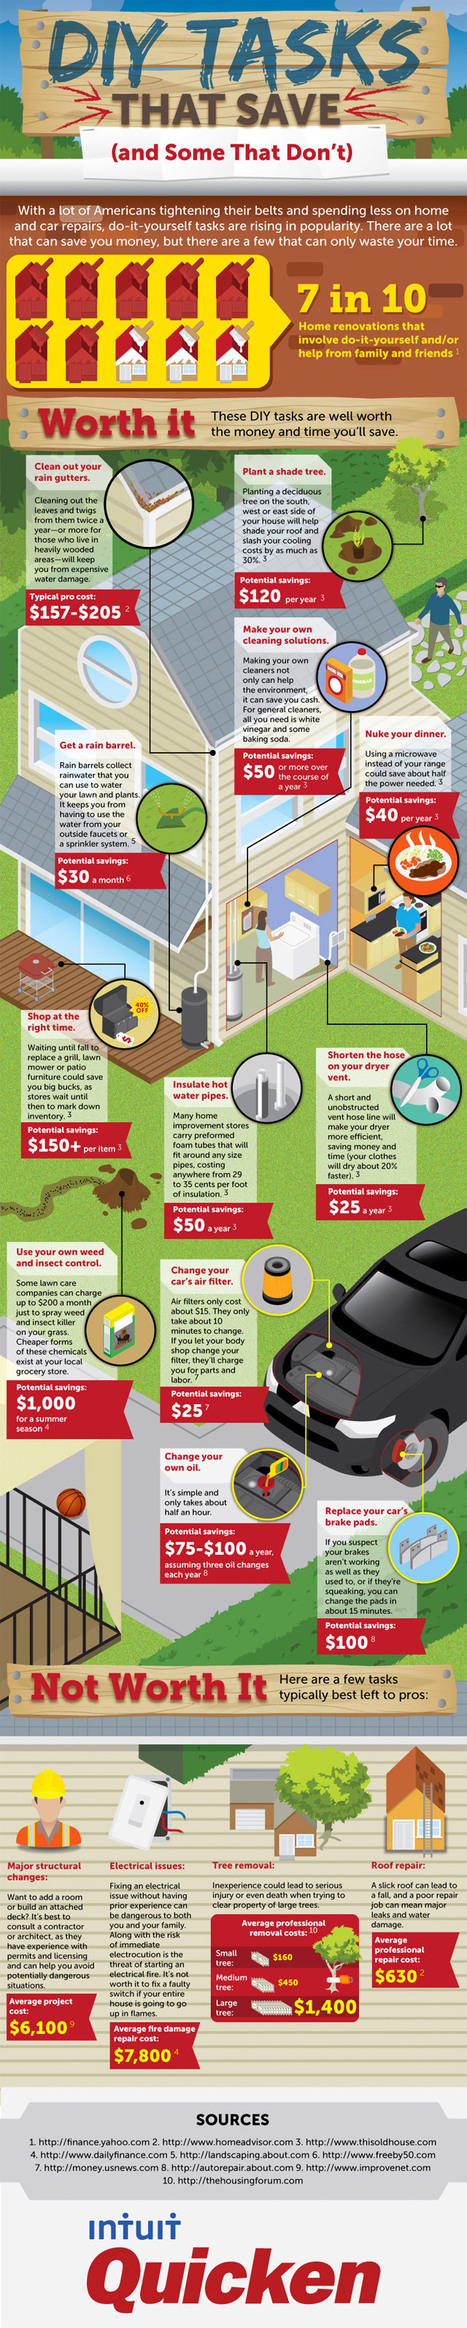 DIY Tasks That Save (And Some That Don't) [Infographic] - Quicken Support | Infographics | Scoop.it